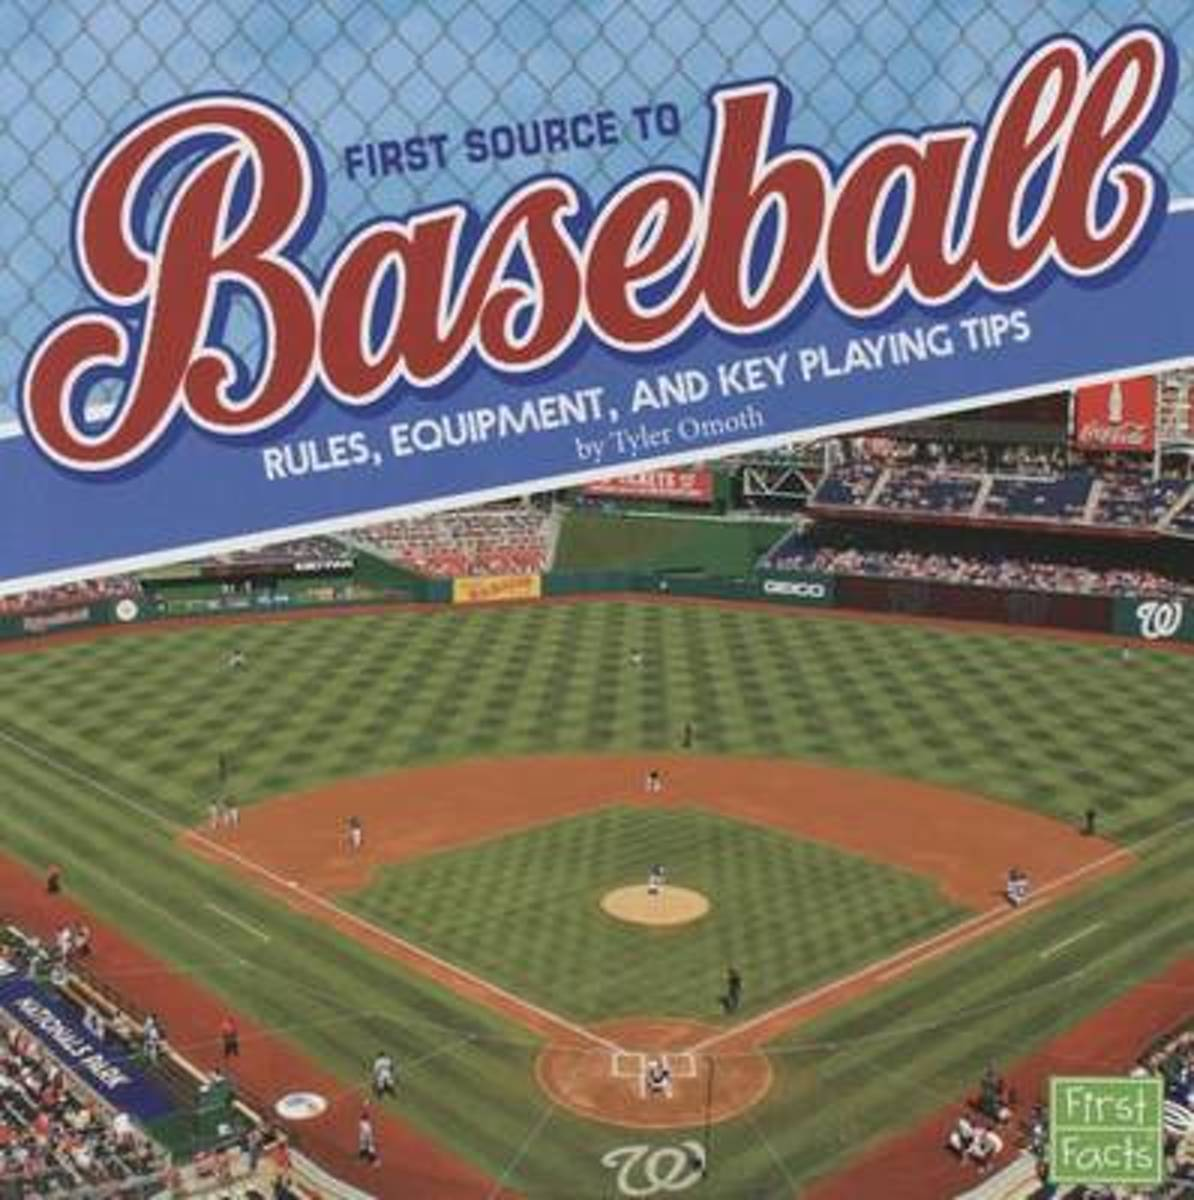 First Source to Baseball